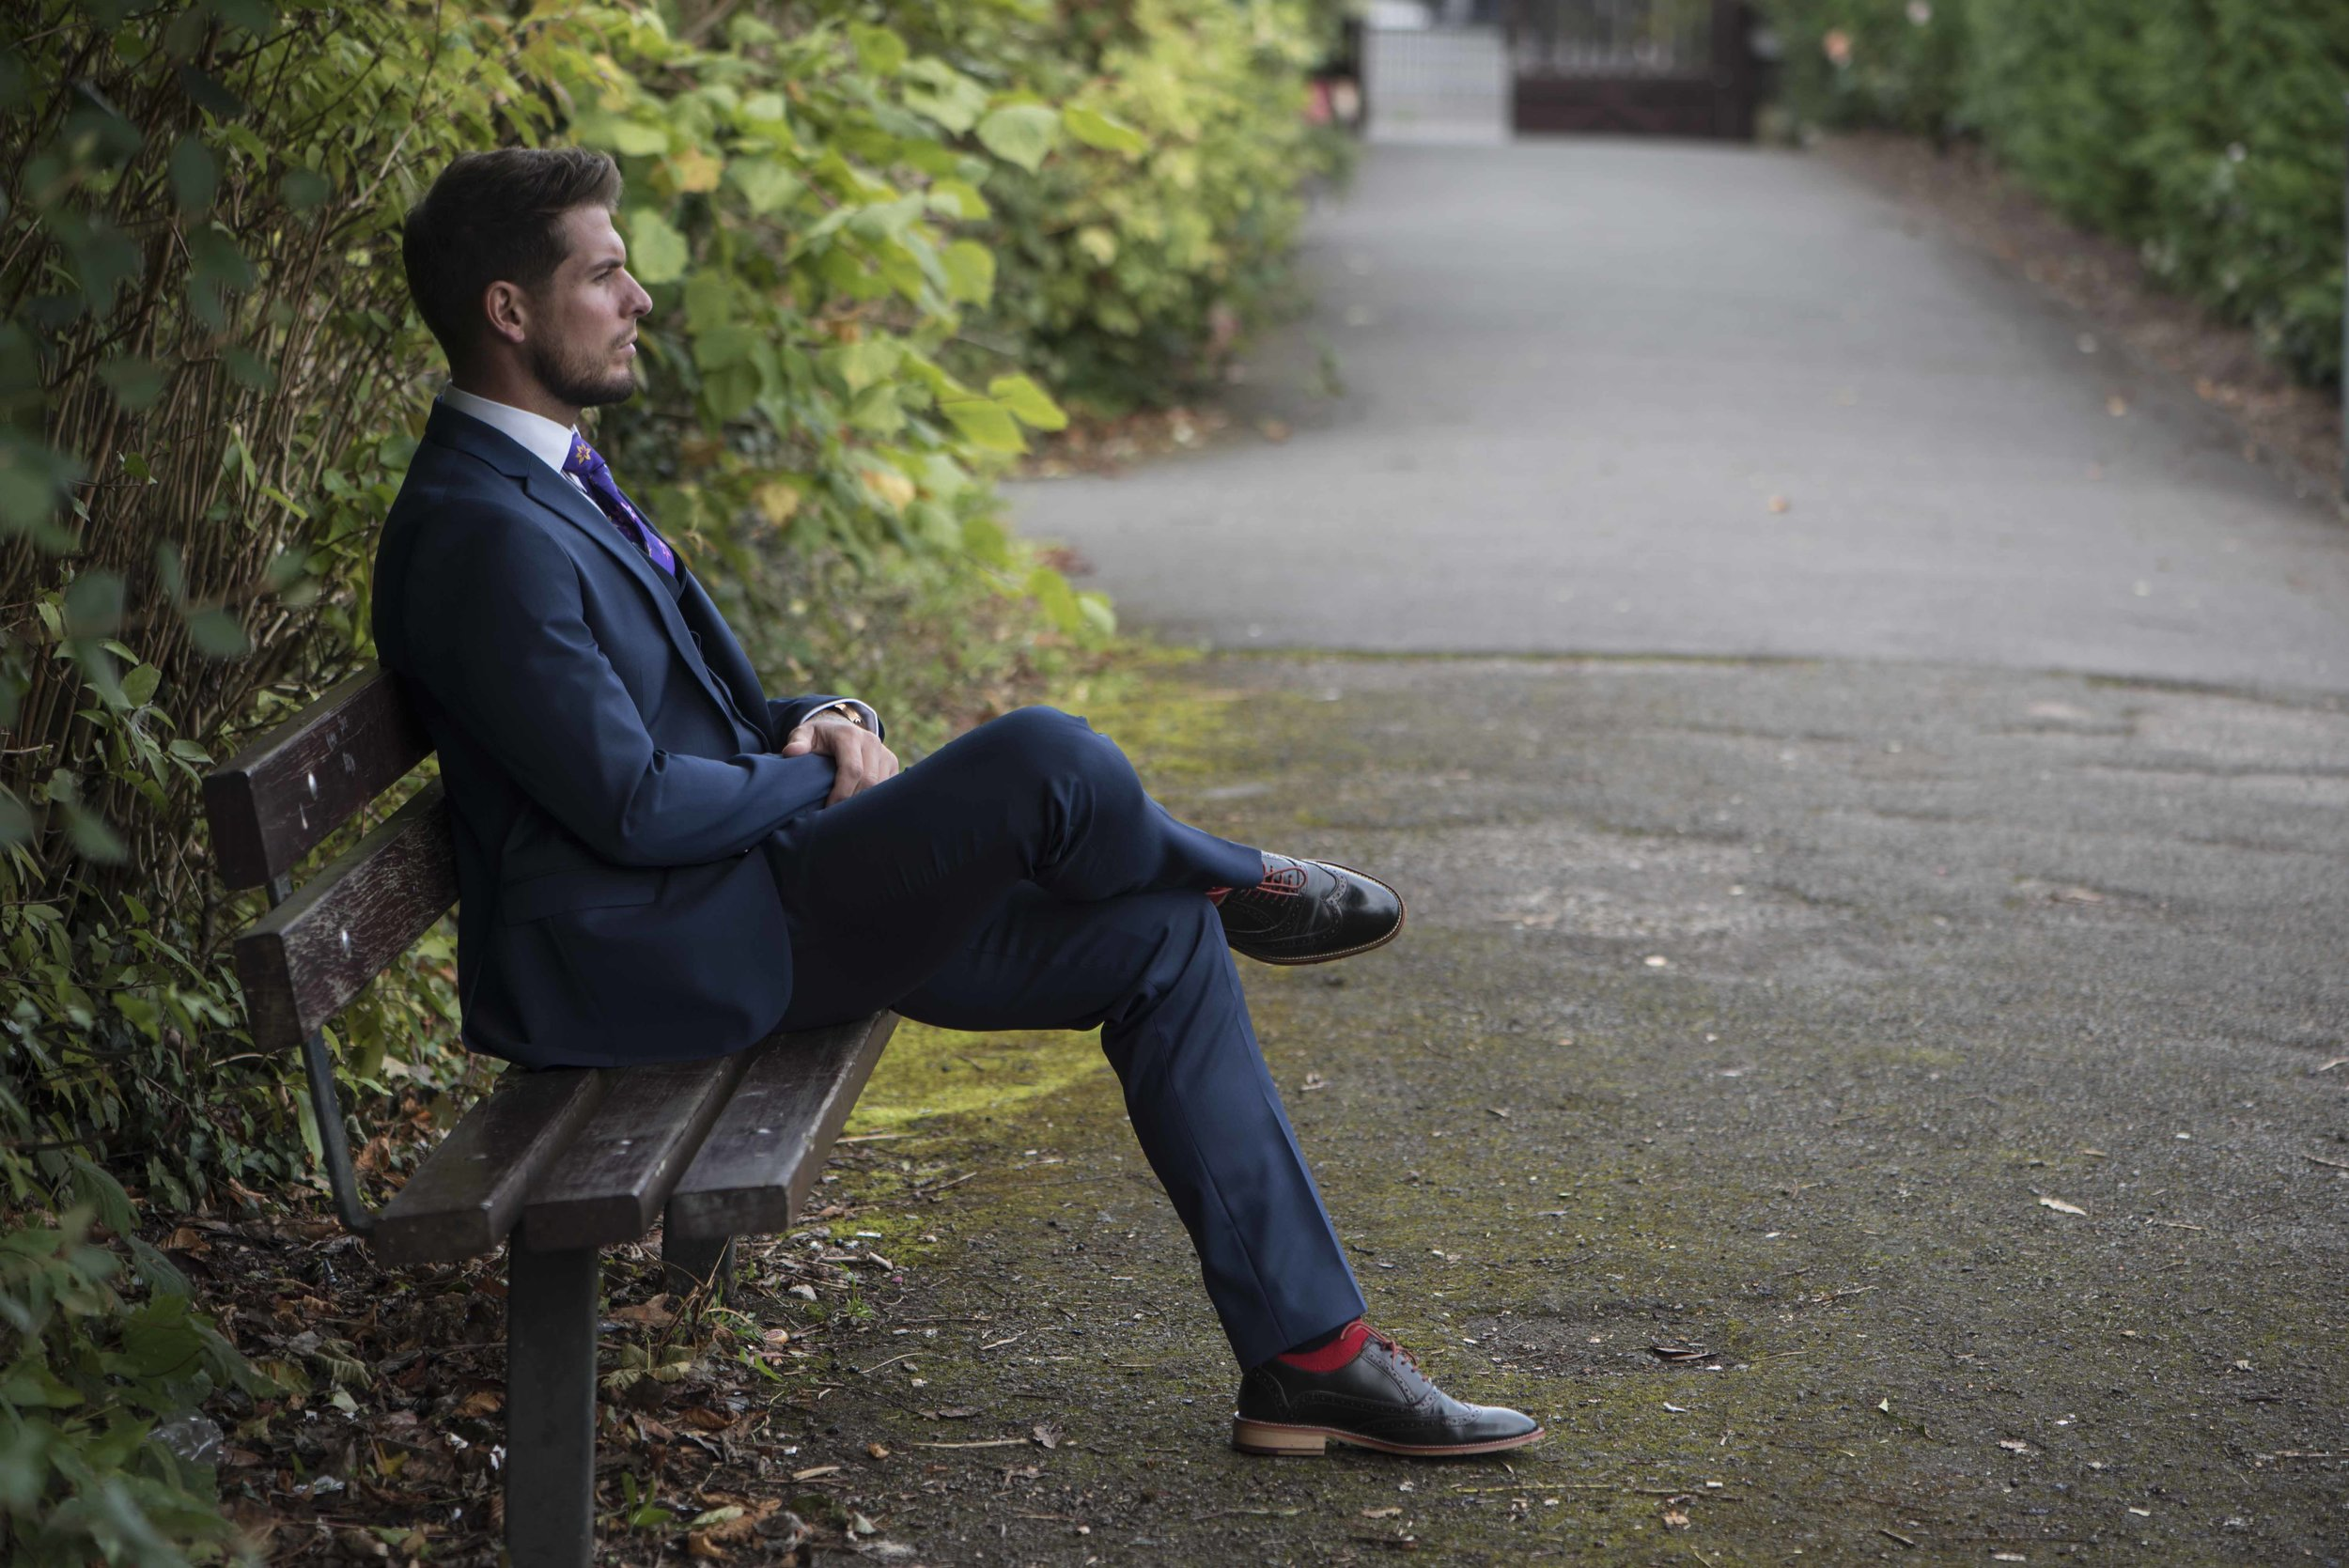 Man in suit sitting on park bench